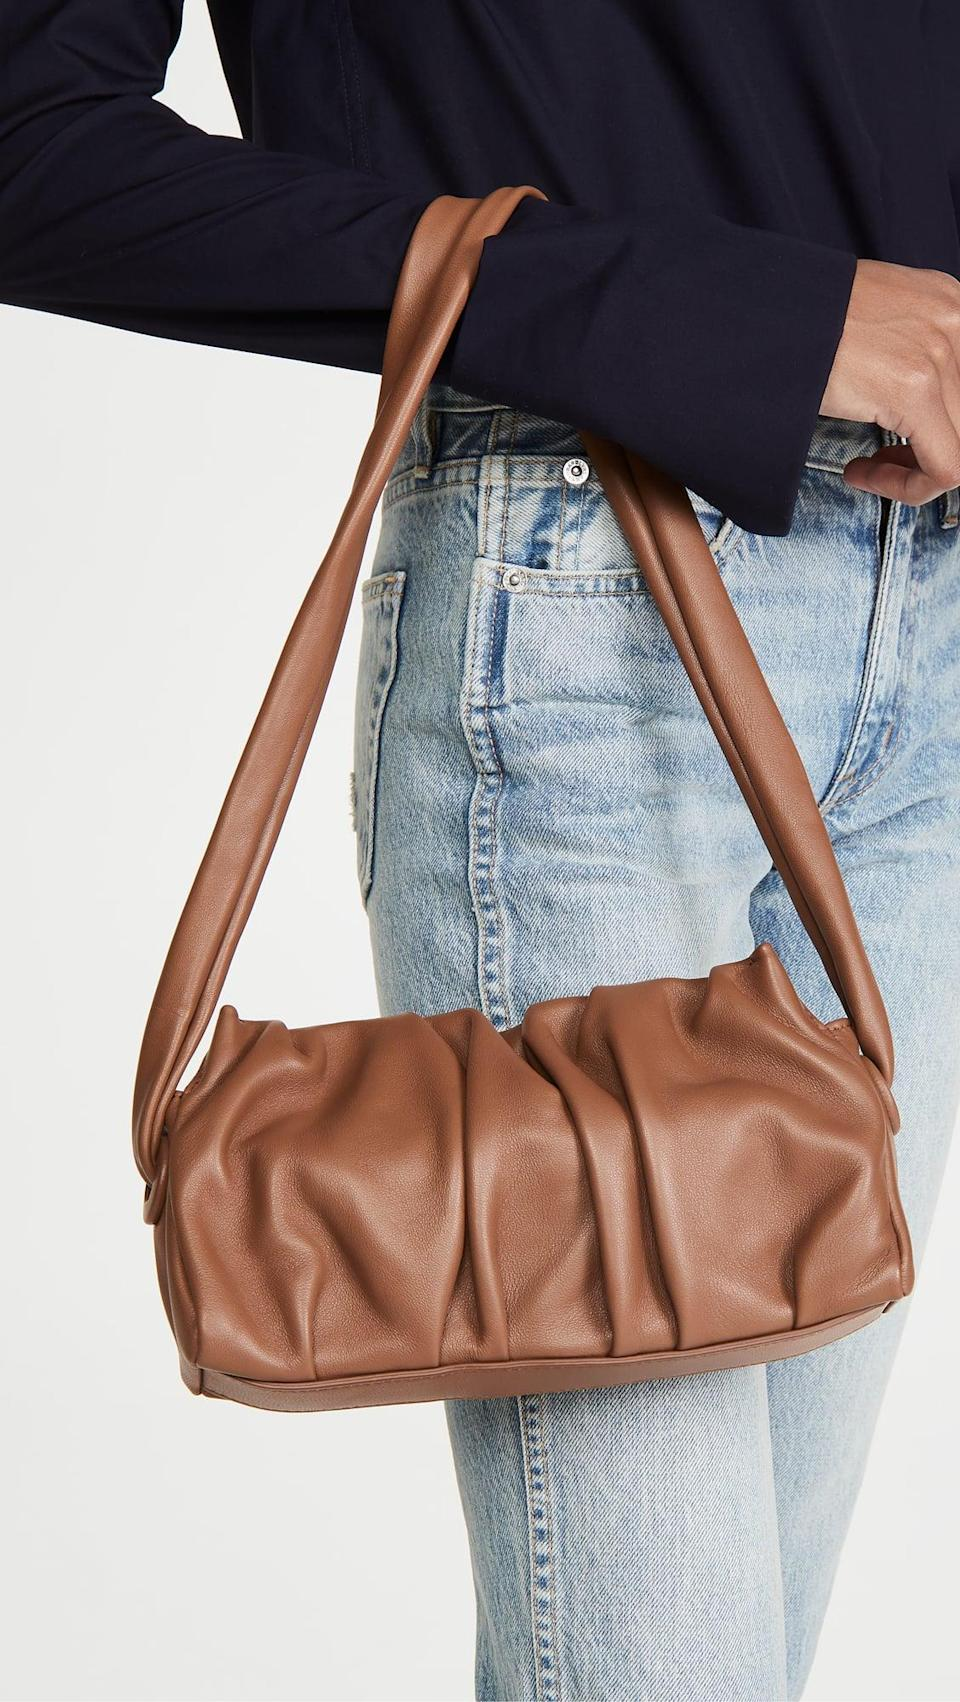 <p>This cool <span>Elleme Vague Lambskin Bag</span> ($415) is soft and easy to carry.</p>